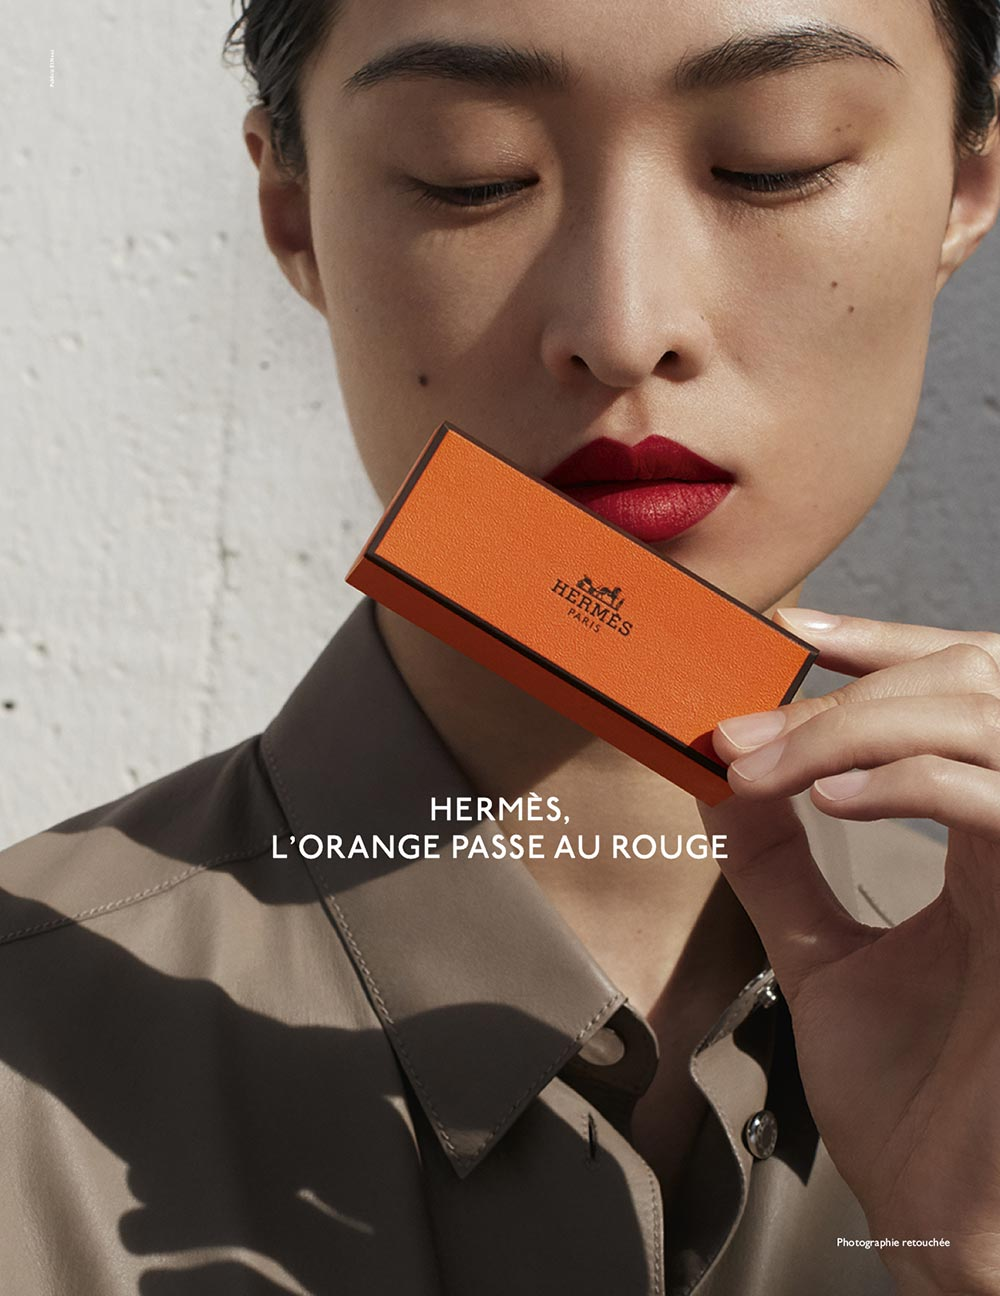 Hermès, l'orange passe au rouge